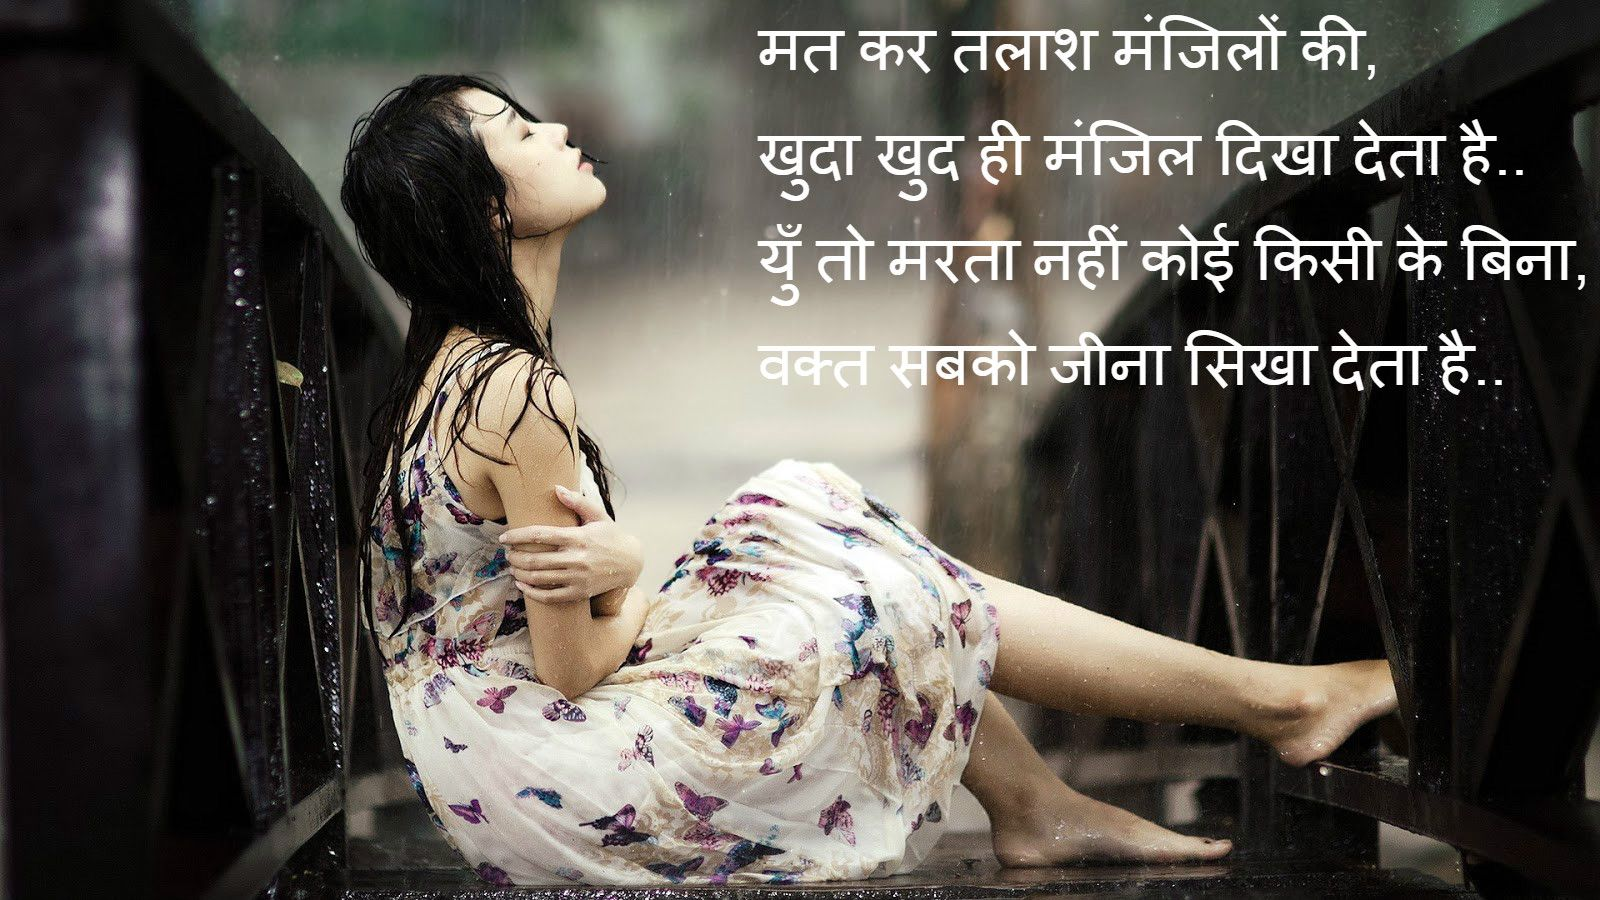 Lonely Sad Girl Images With Quotes In Hindi Wallpaper Stock